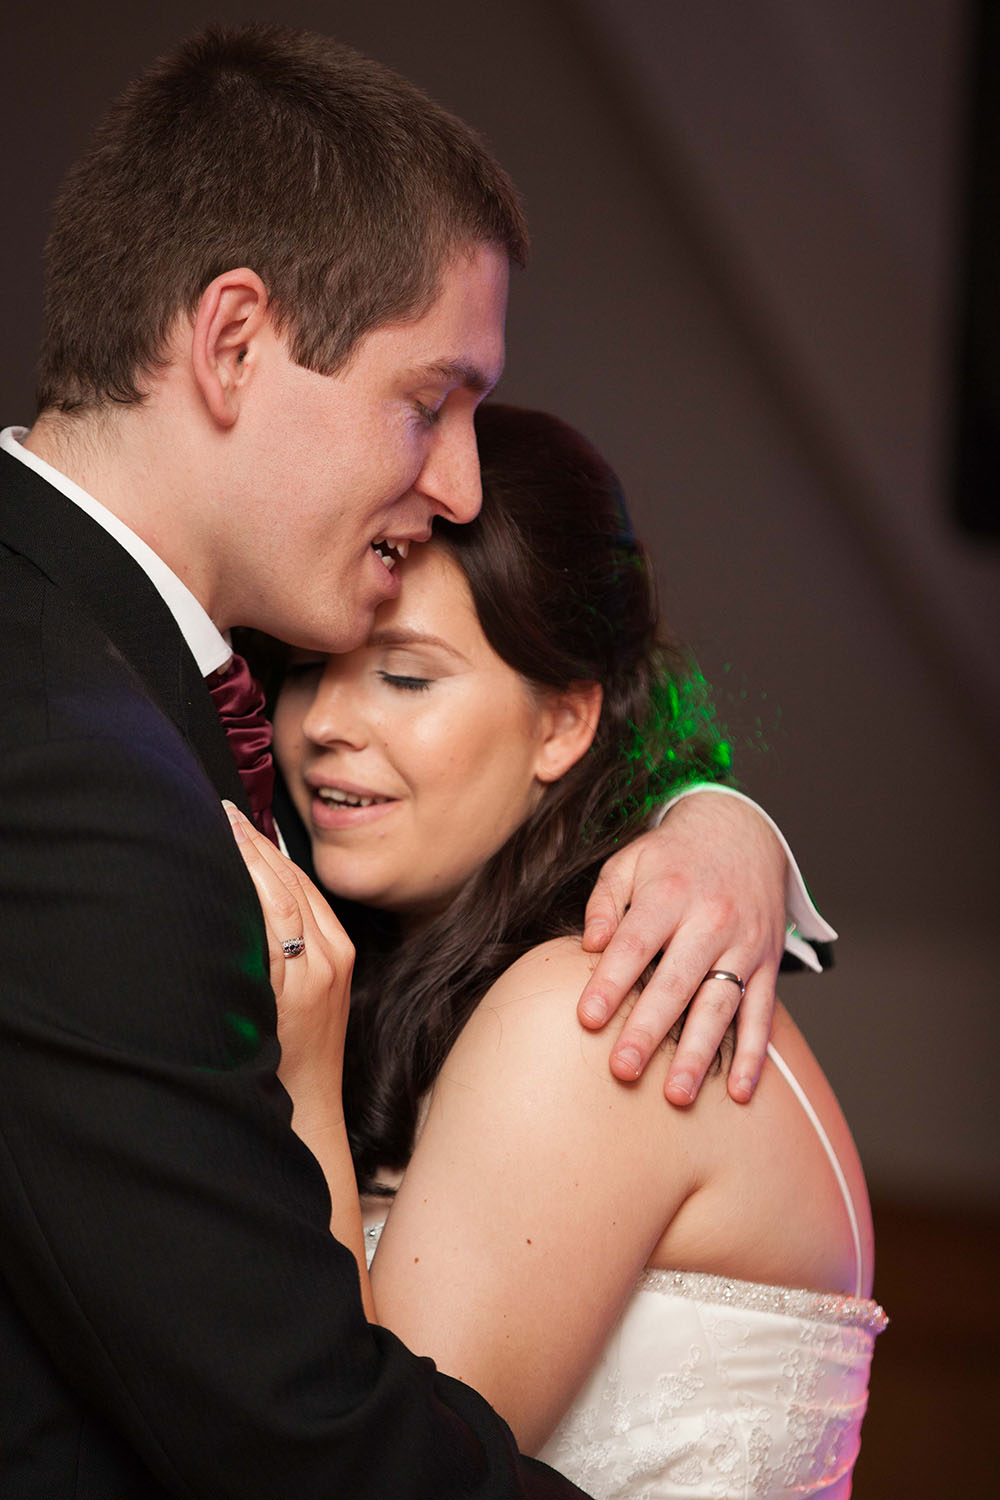 groom-holding-his-bride-during-the-first-dance.jpg